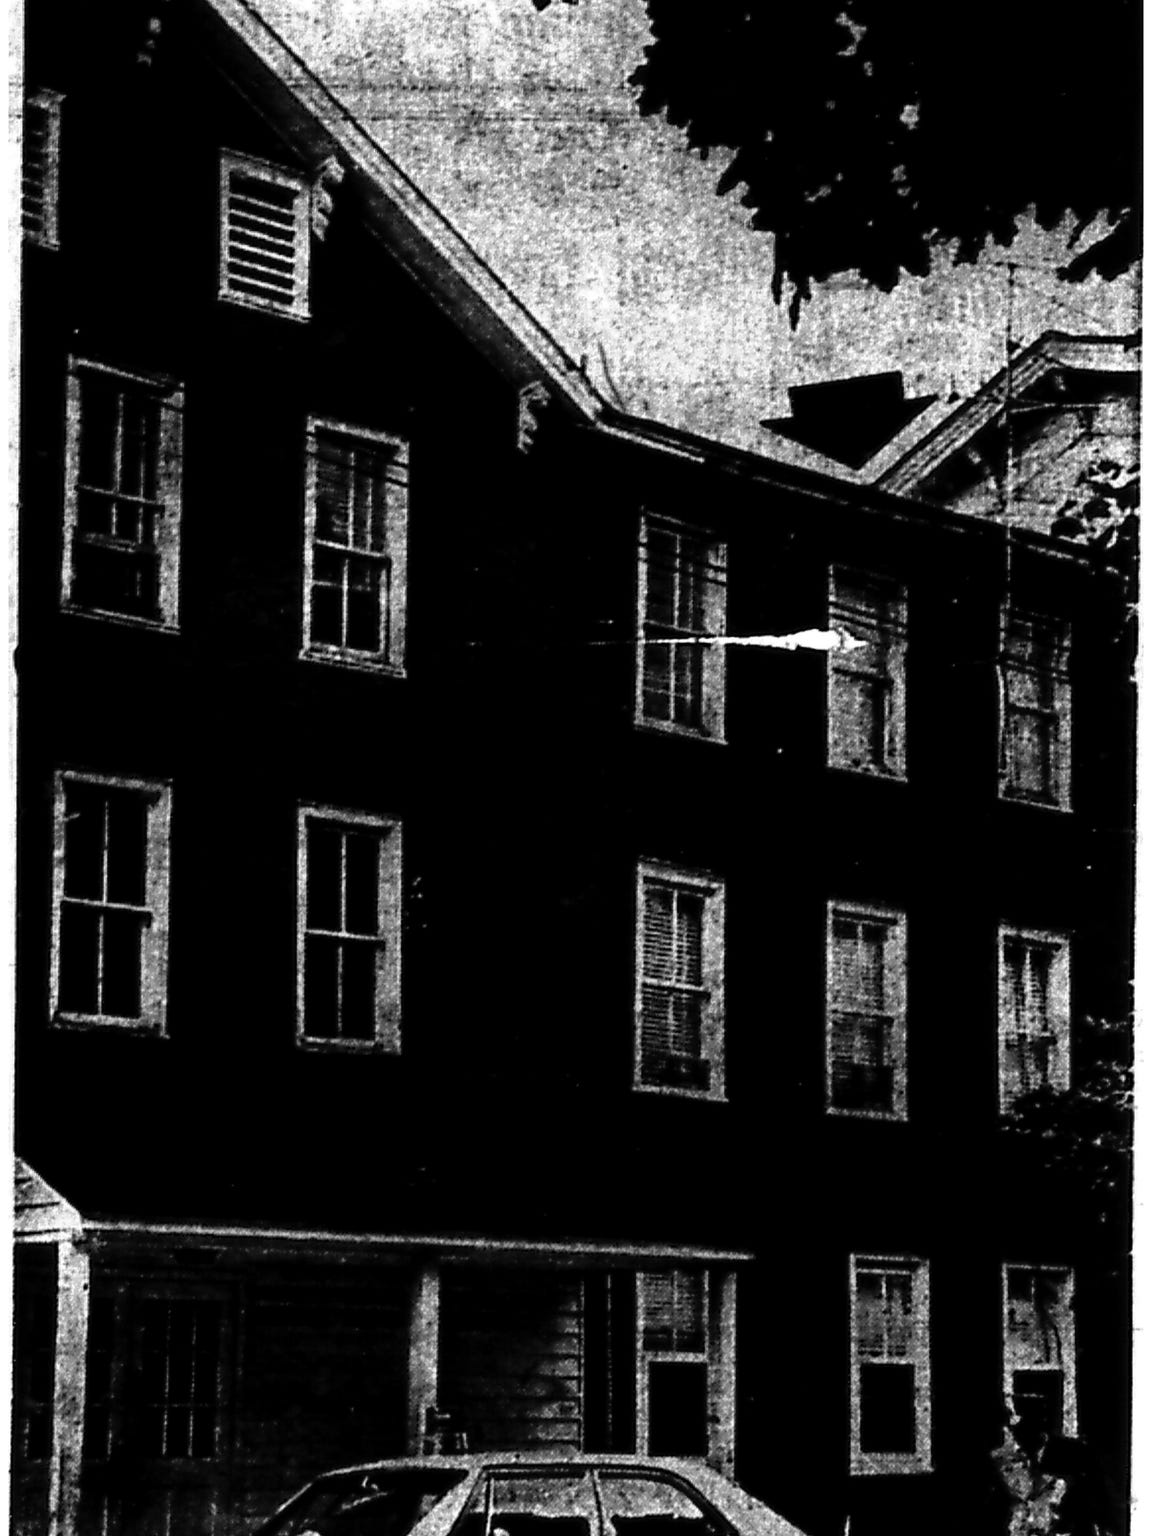 The apartment building at 770 Maple St., where Peggy